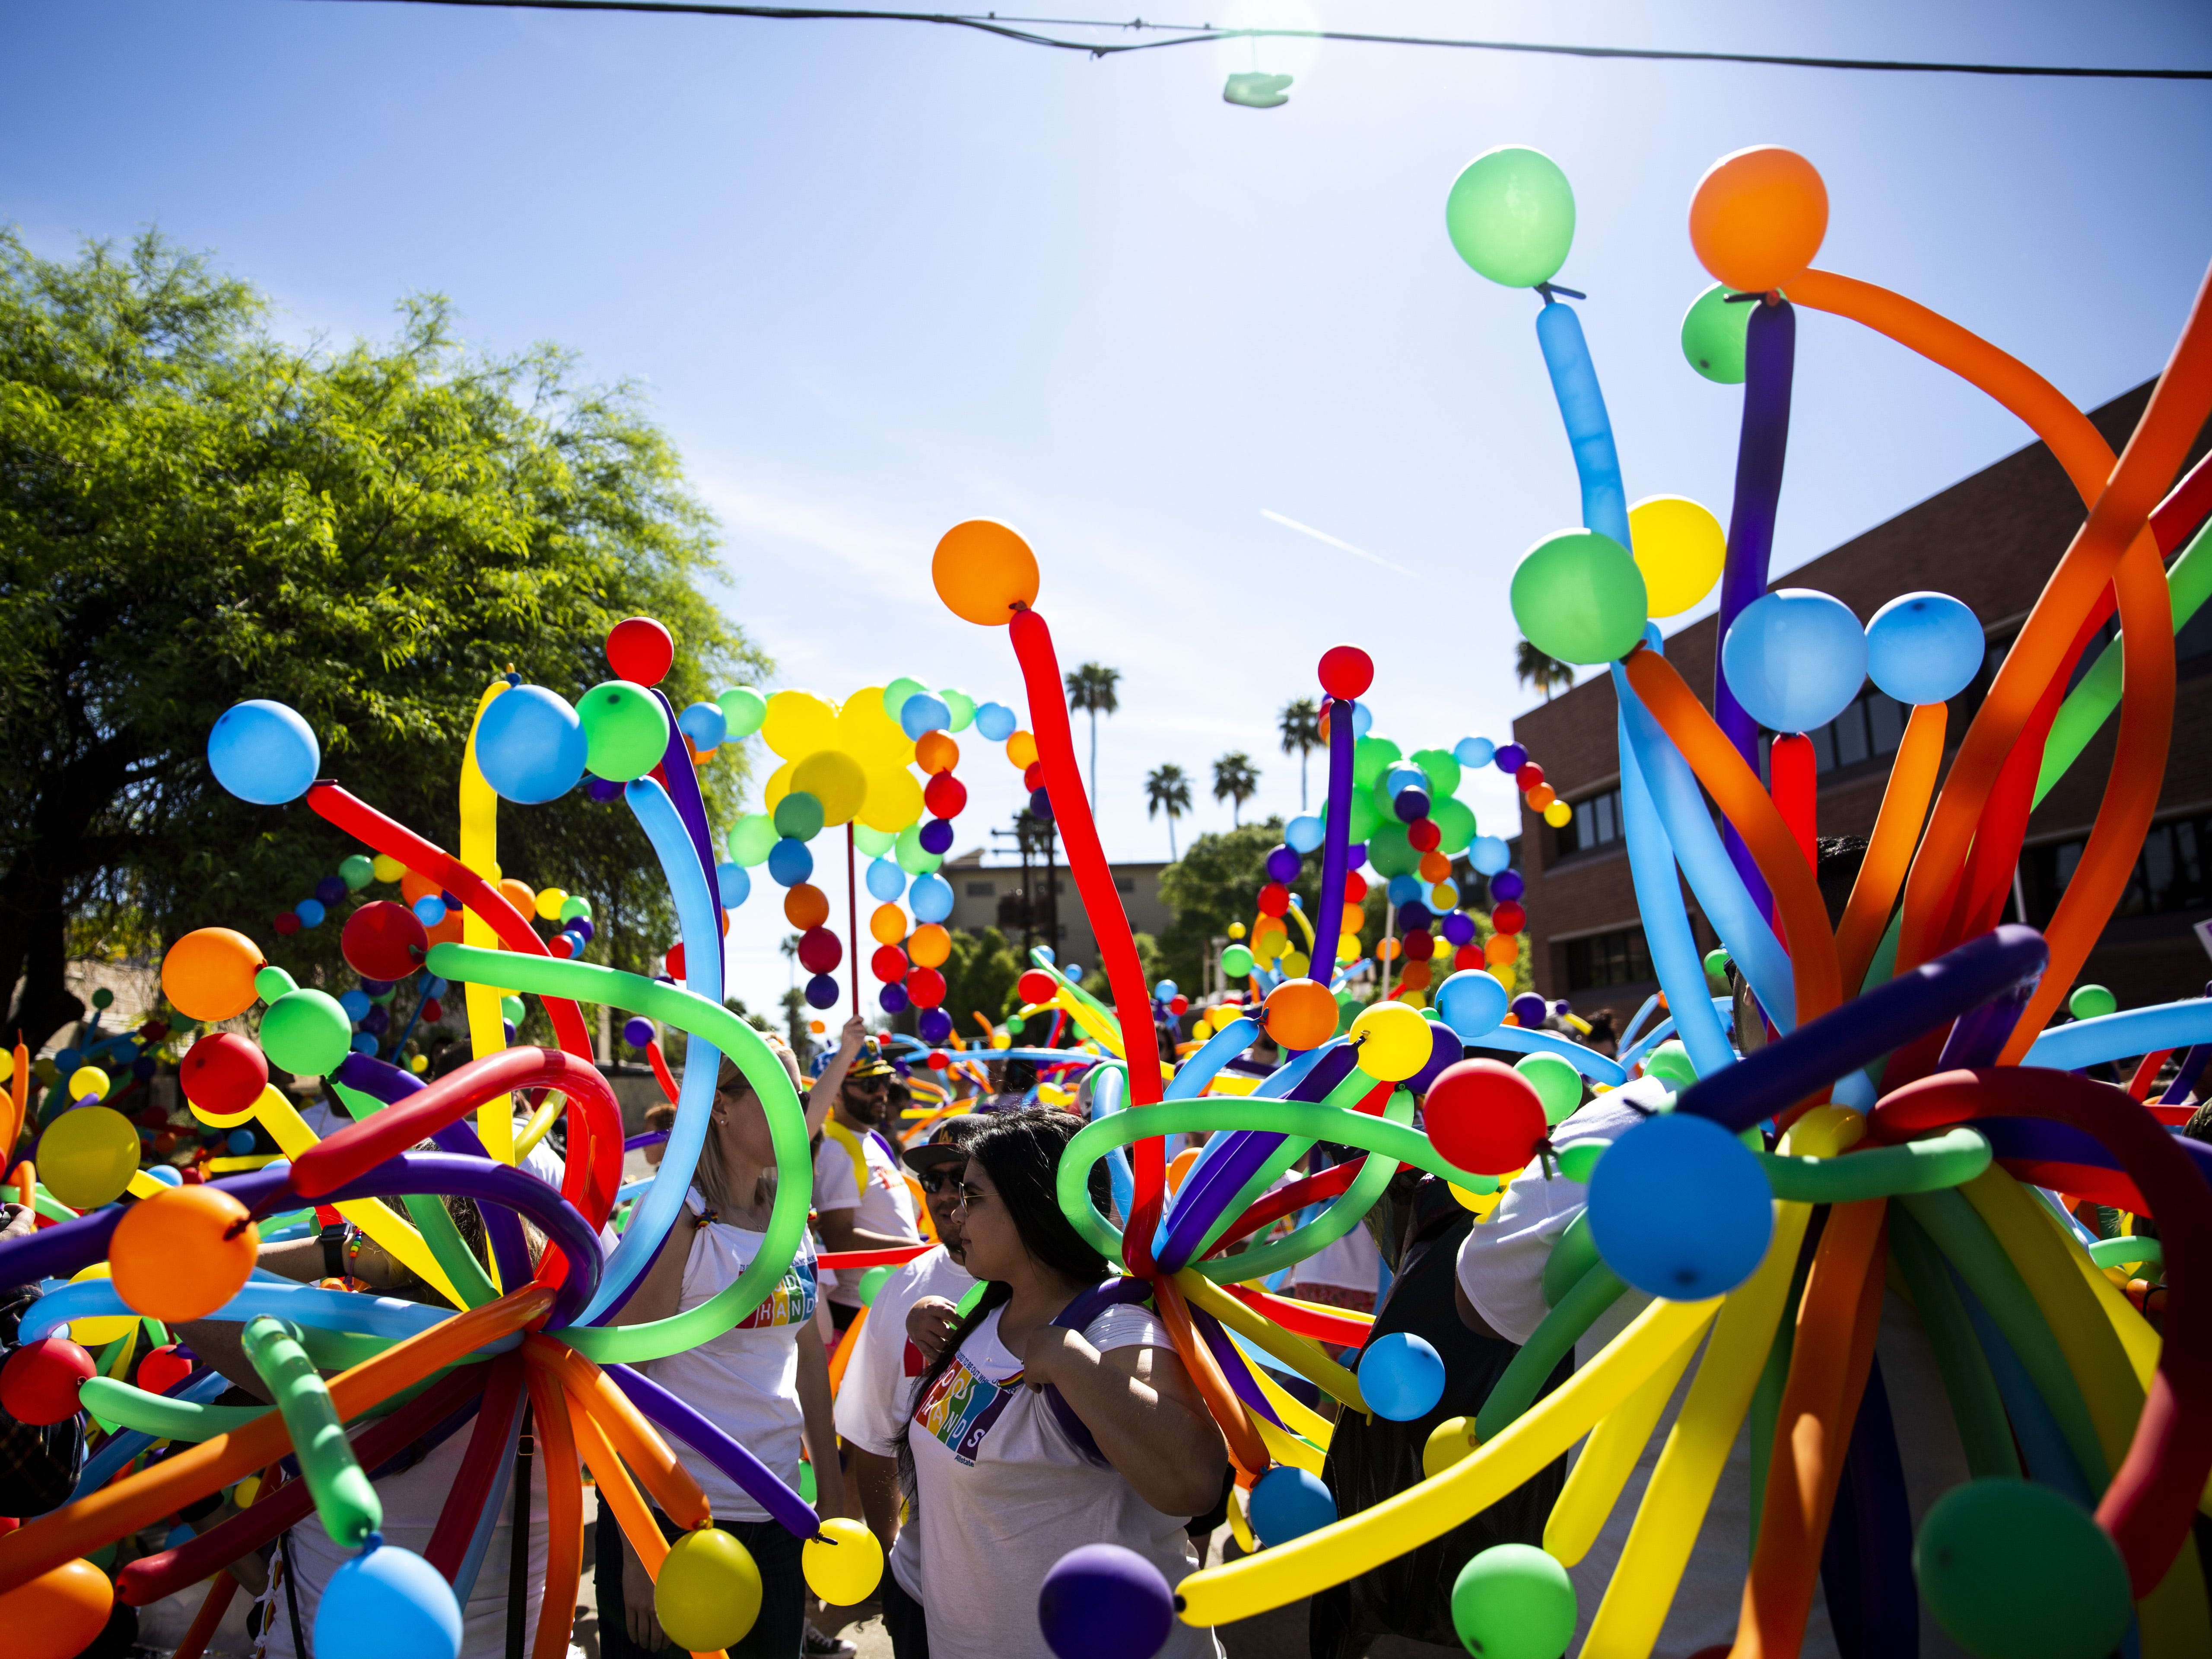 The Allstate Insurance group dressed in balloons for the Phoenix Pride Parade on April 7, 2019.